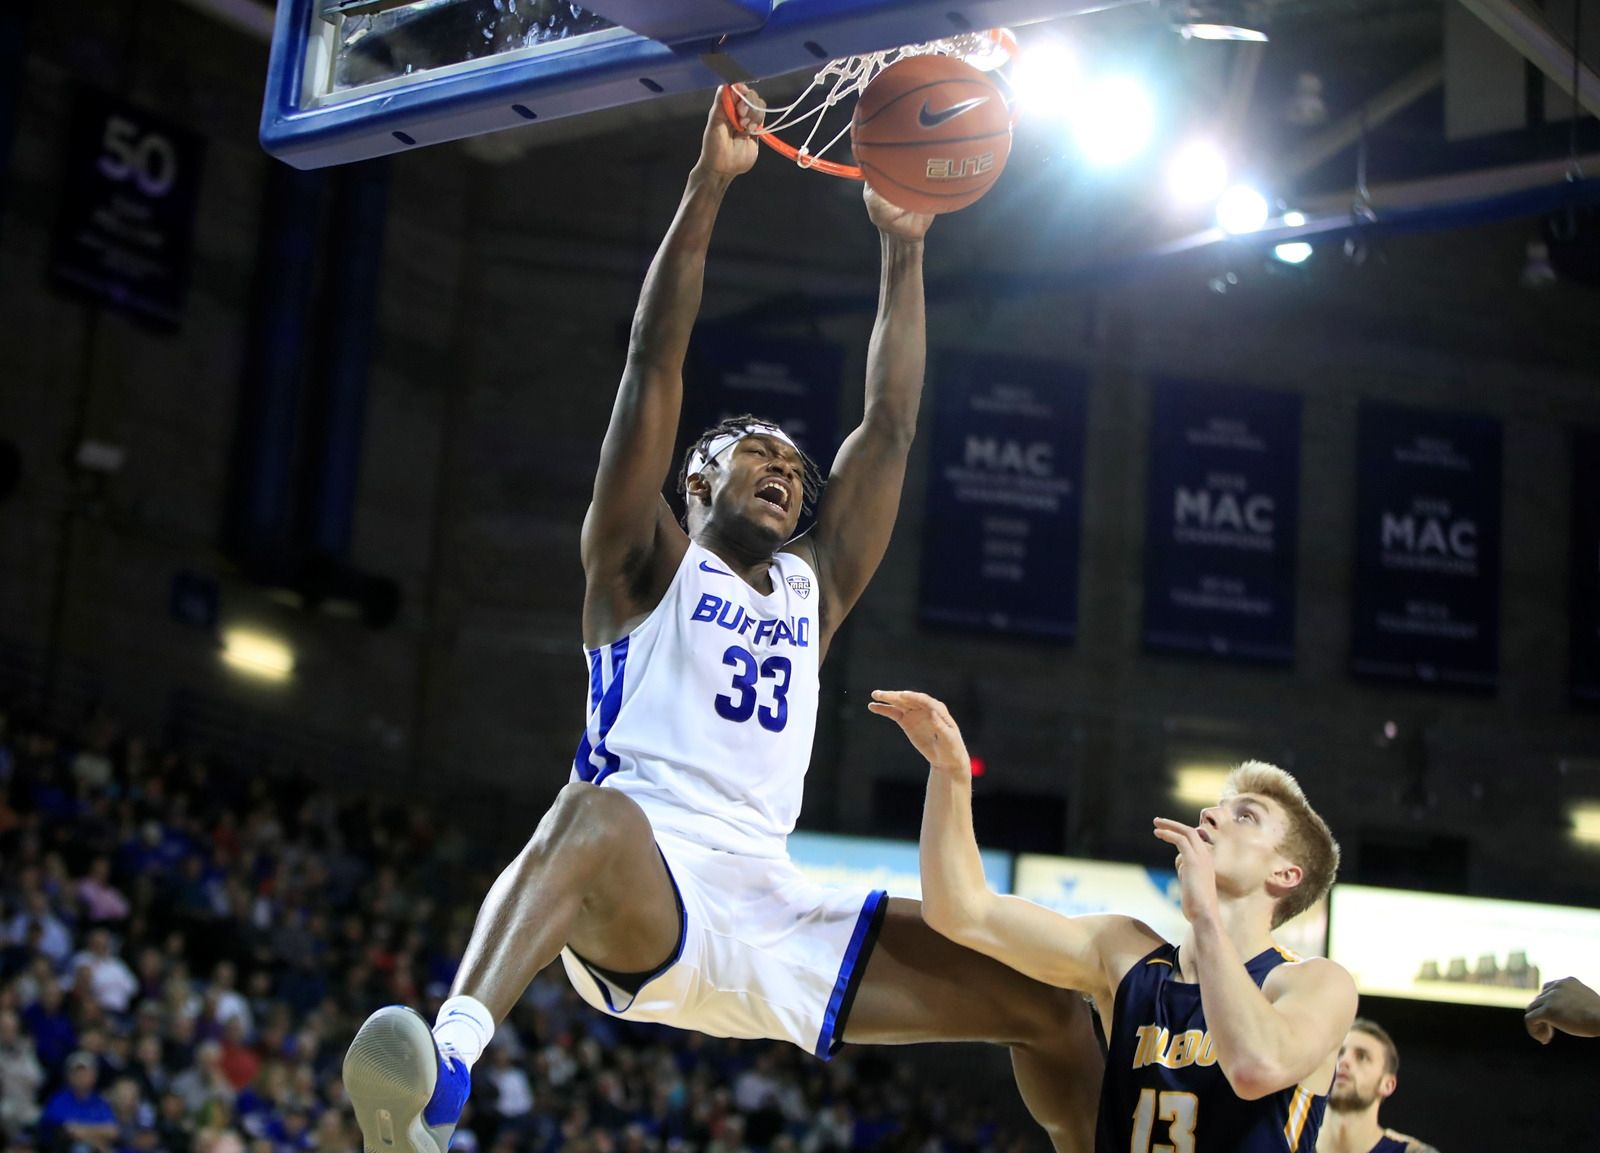 Buffalo forward Nick Perkins dunks against Toledo during the first half at Alumni Arena on Tuesday, Jan. 8, 2019.